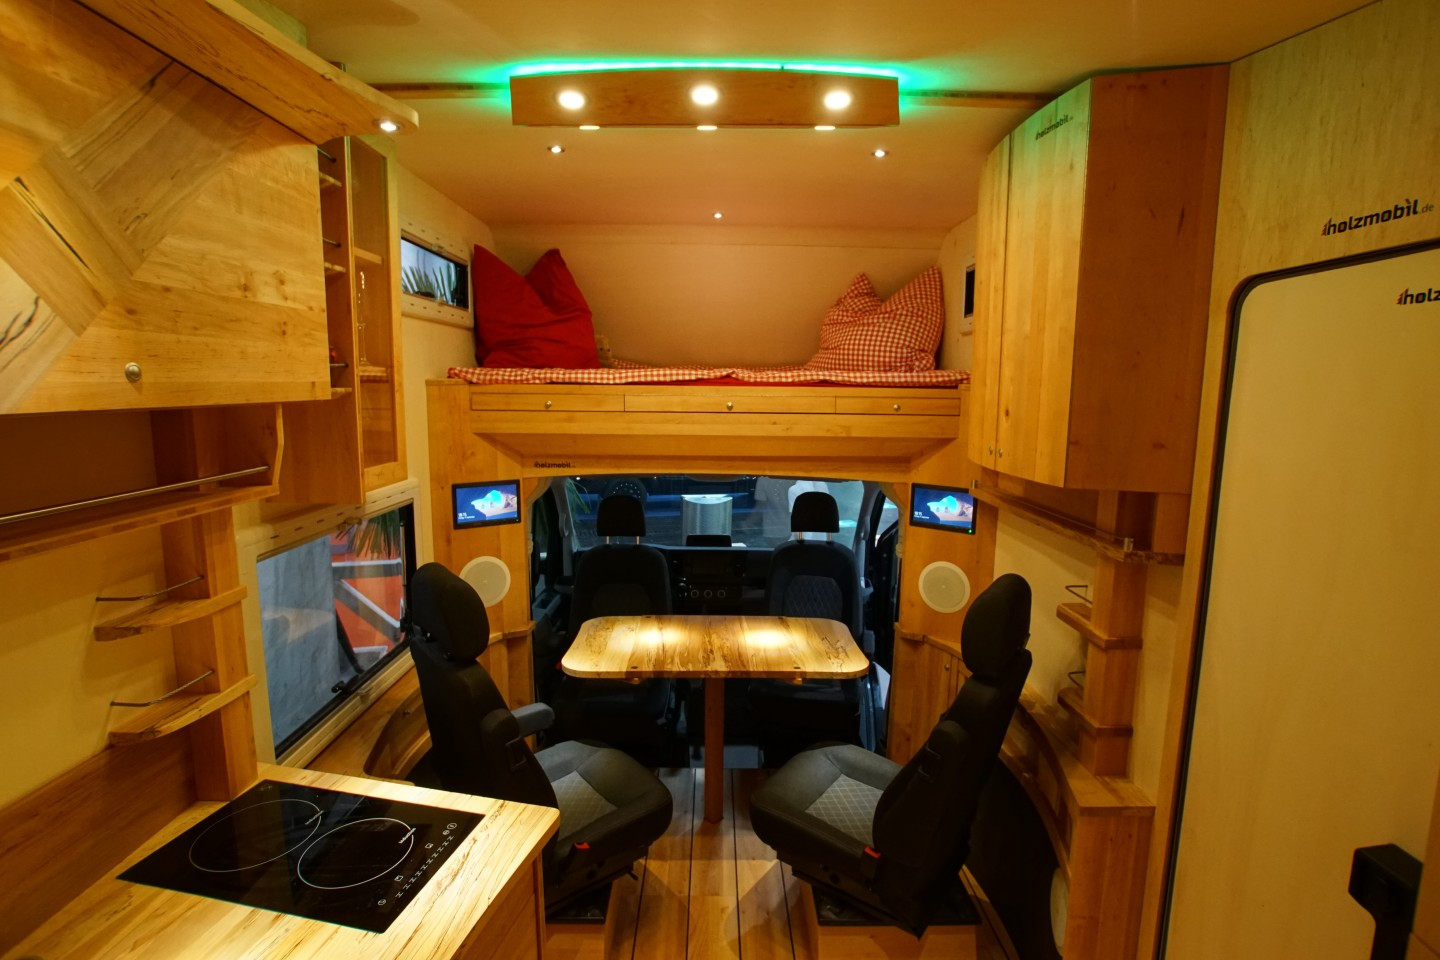 The 4,500-kg Holzmobil has a sleeper alcove and four-chair dining area